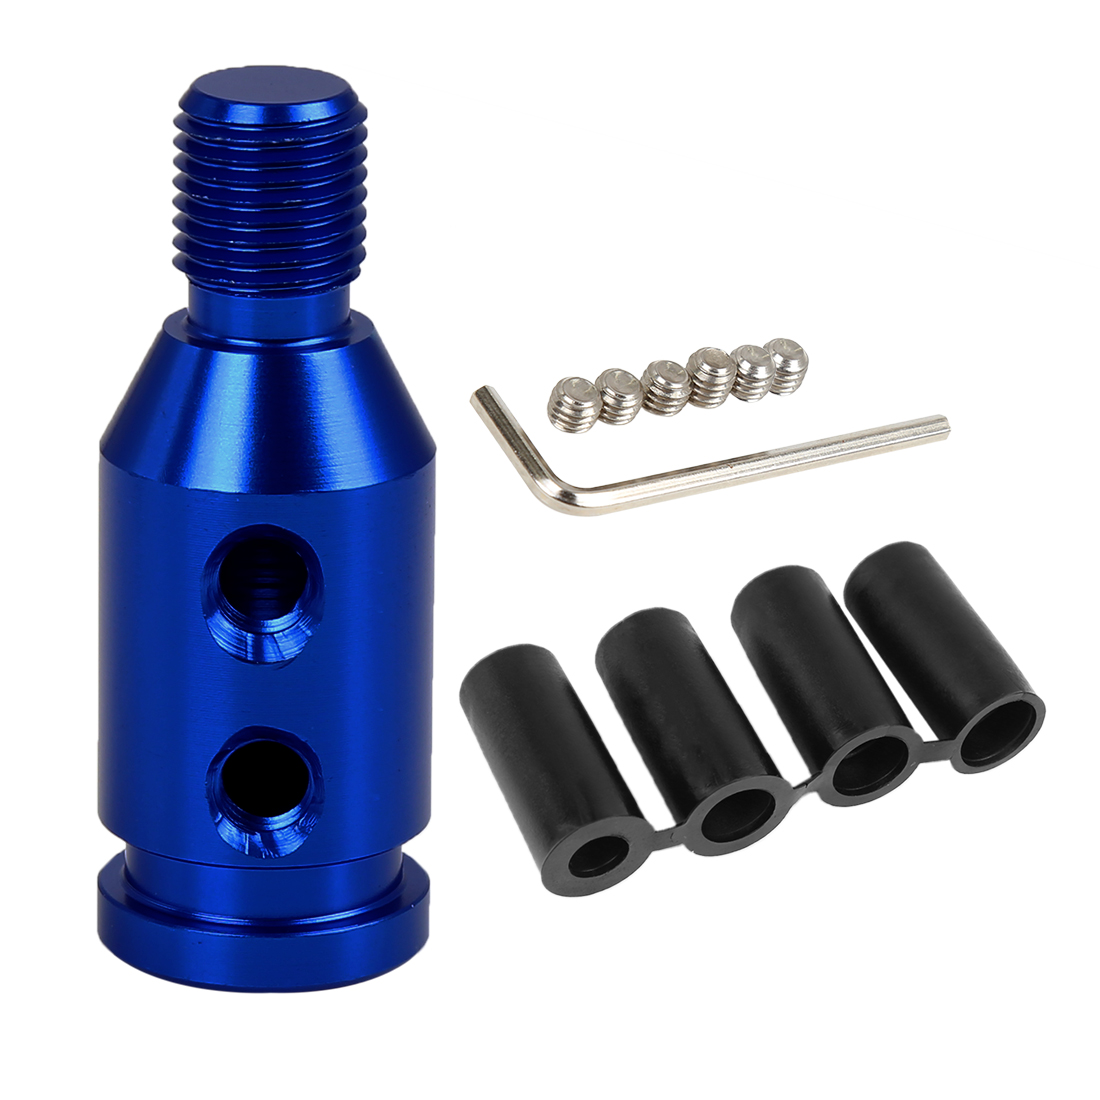 M12 x 1.25 Car Universal Blue Gear Shift Knob Adapter for Non Threaded Shifter